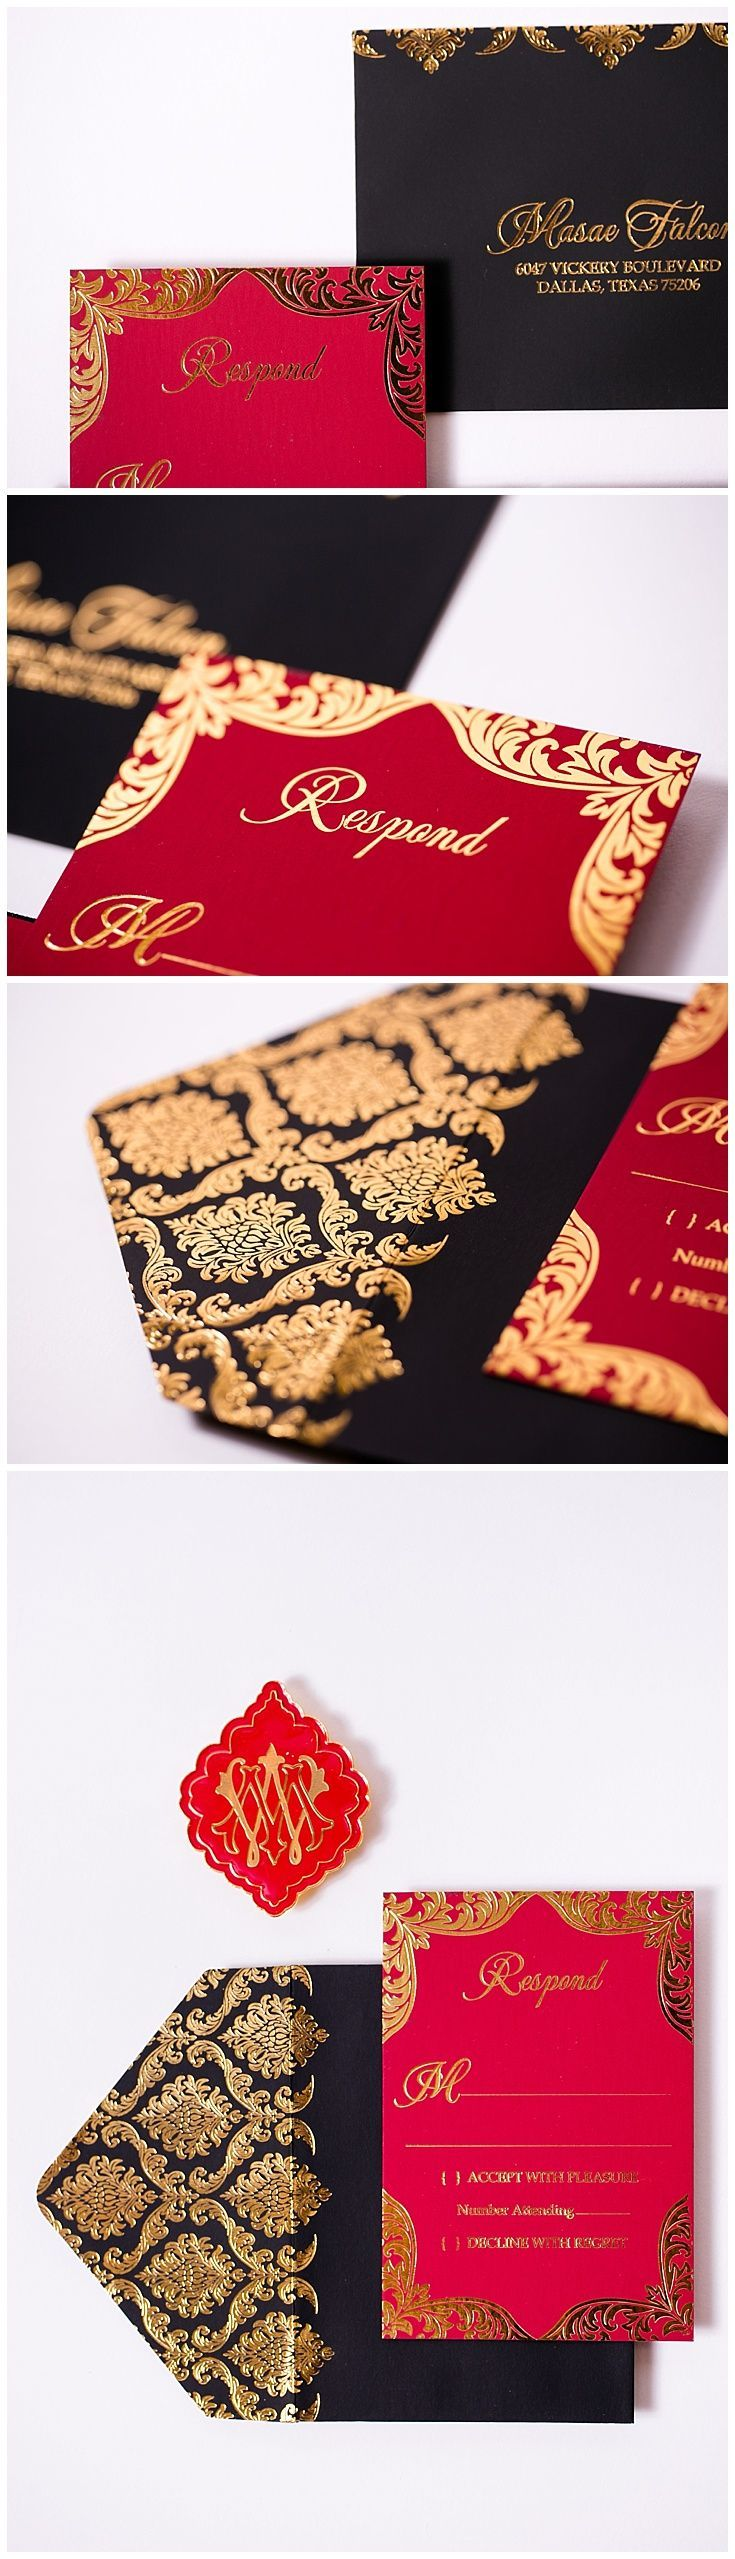 Velvet Wedding Invitations | Lovely Little Weddings | Pinterest ...